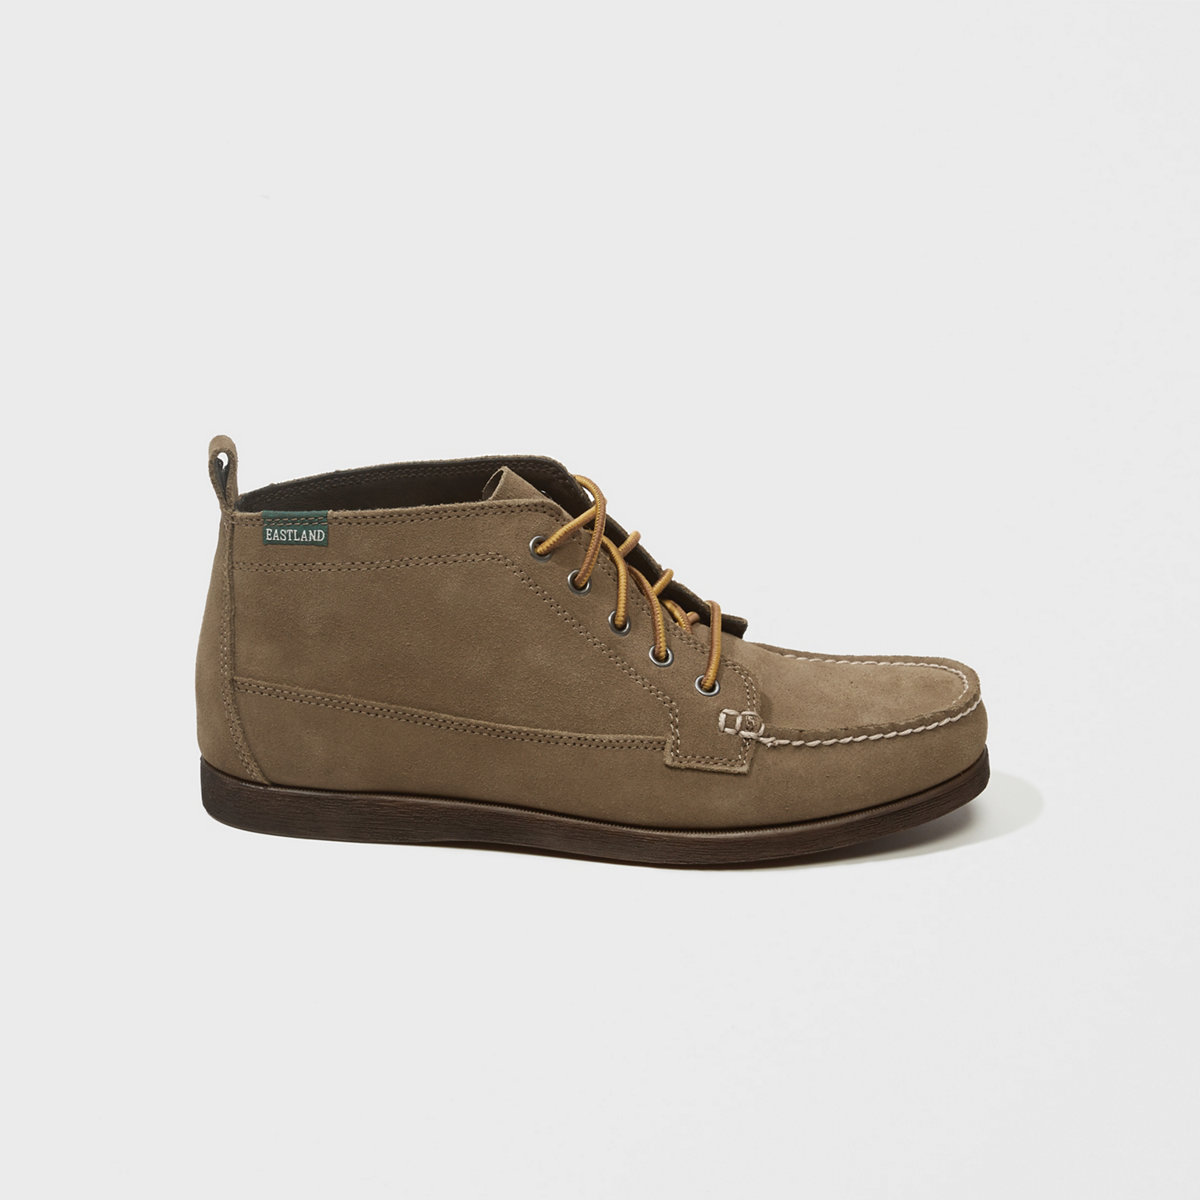 Eastland Seneca Camp Moc Chukka Boot